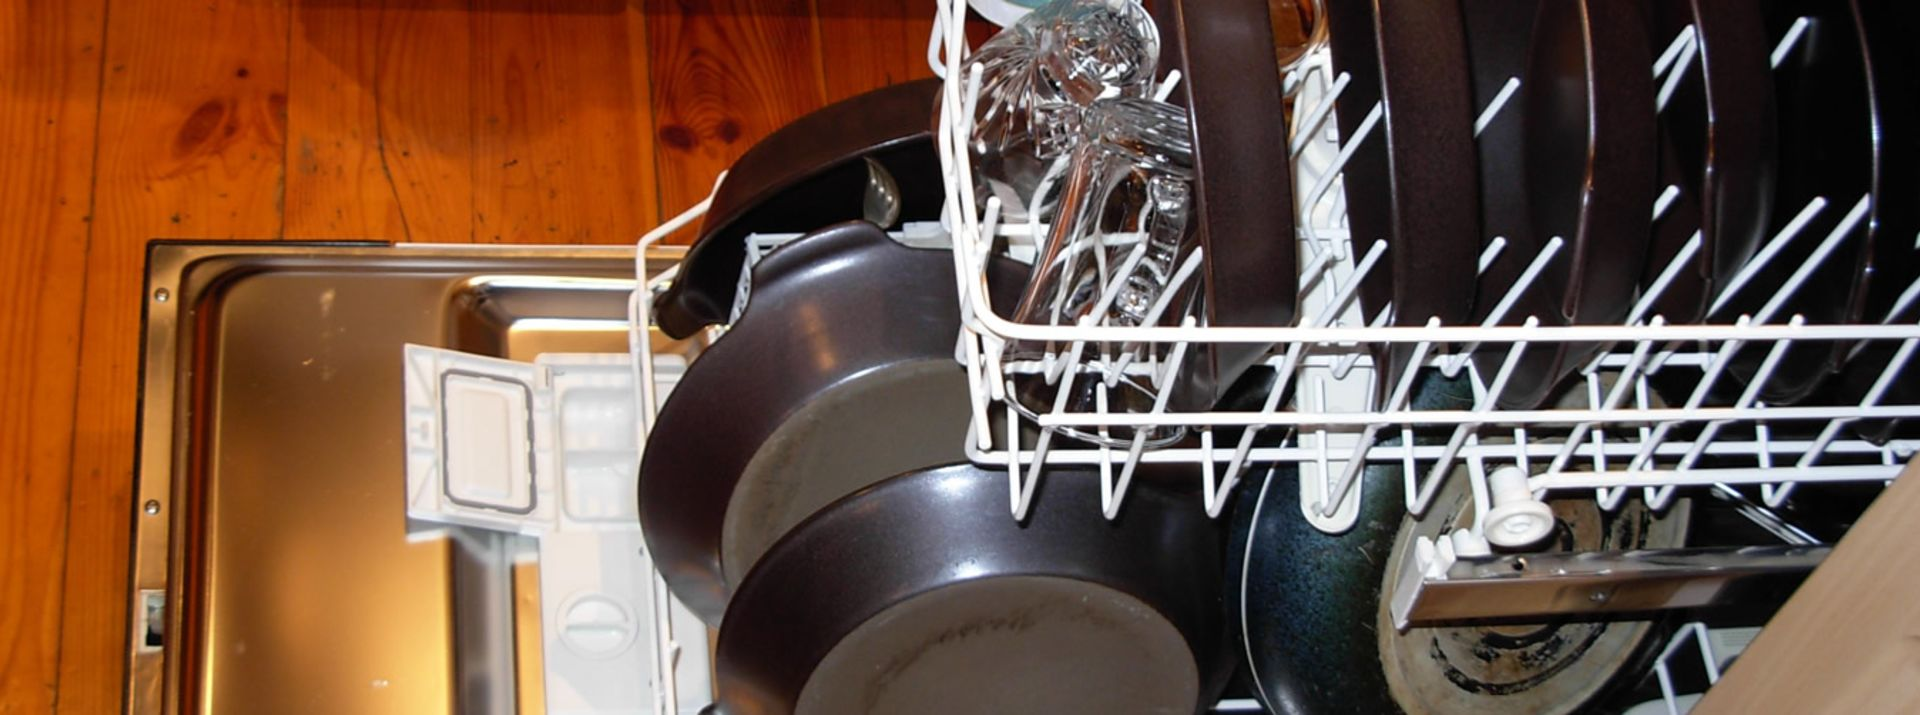 8 Odd Things to Wash in the Dishwasher